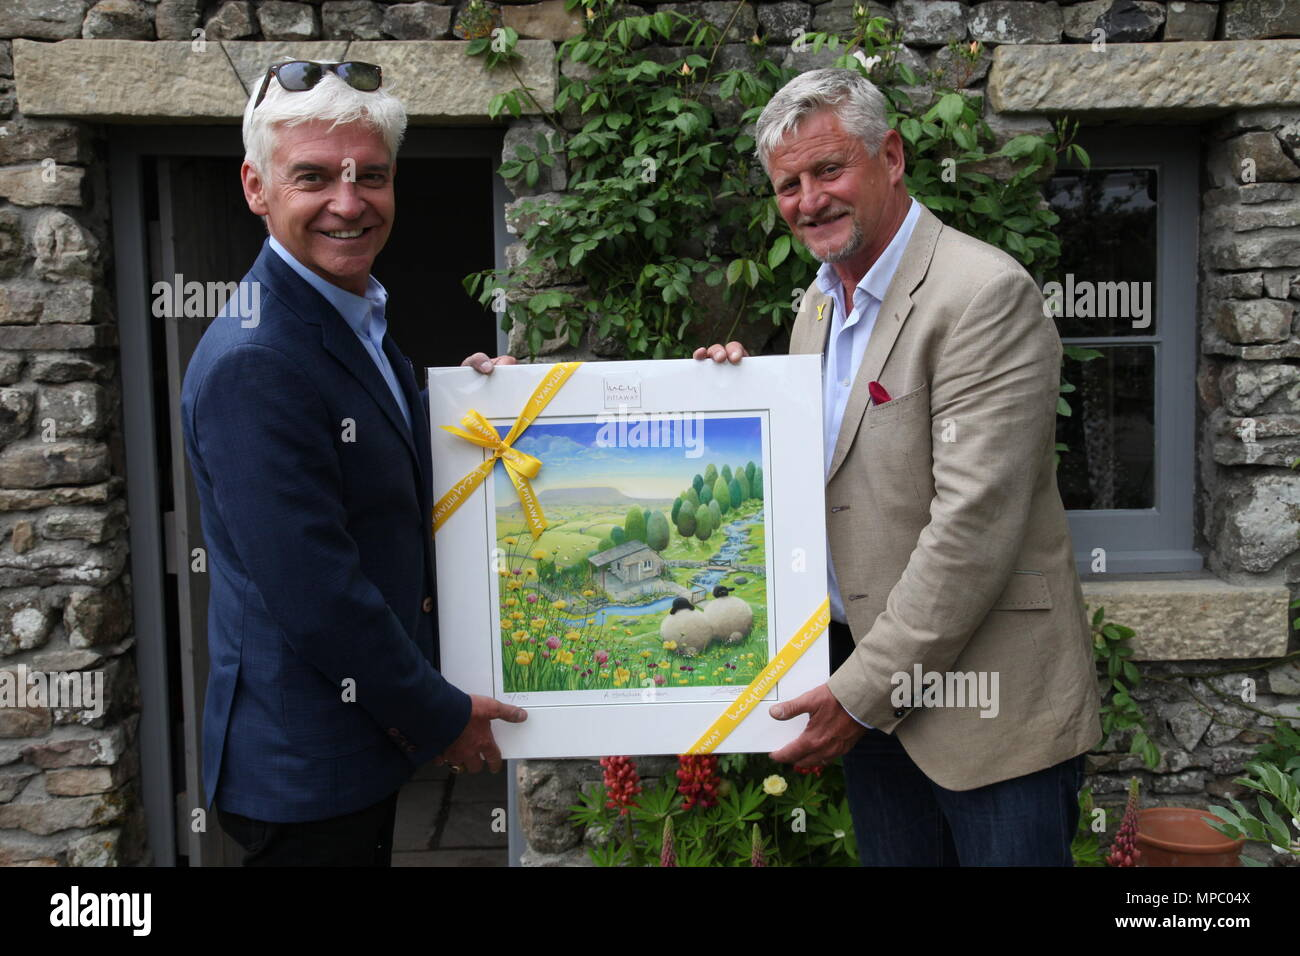 Chelsea, London, UK. 21st May, 2018. Phillip Schofield being presented with a picture by Mark Gregory on the Welcome to Yorkshire garden at Chelsea Flower Show 2018, designed by Mark Gregory for Landformconsultants.co.uk Credit: Jenny Lilly/Alamy Live News - Stock Image